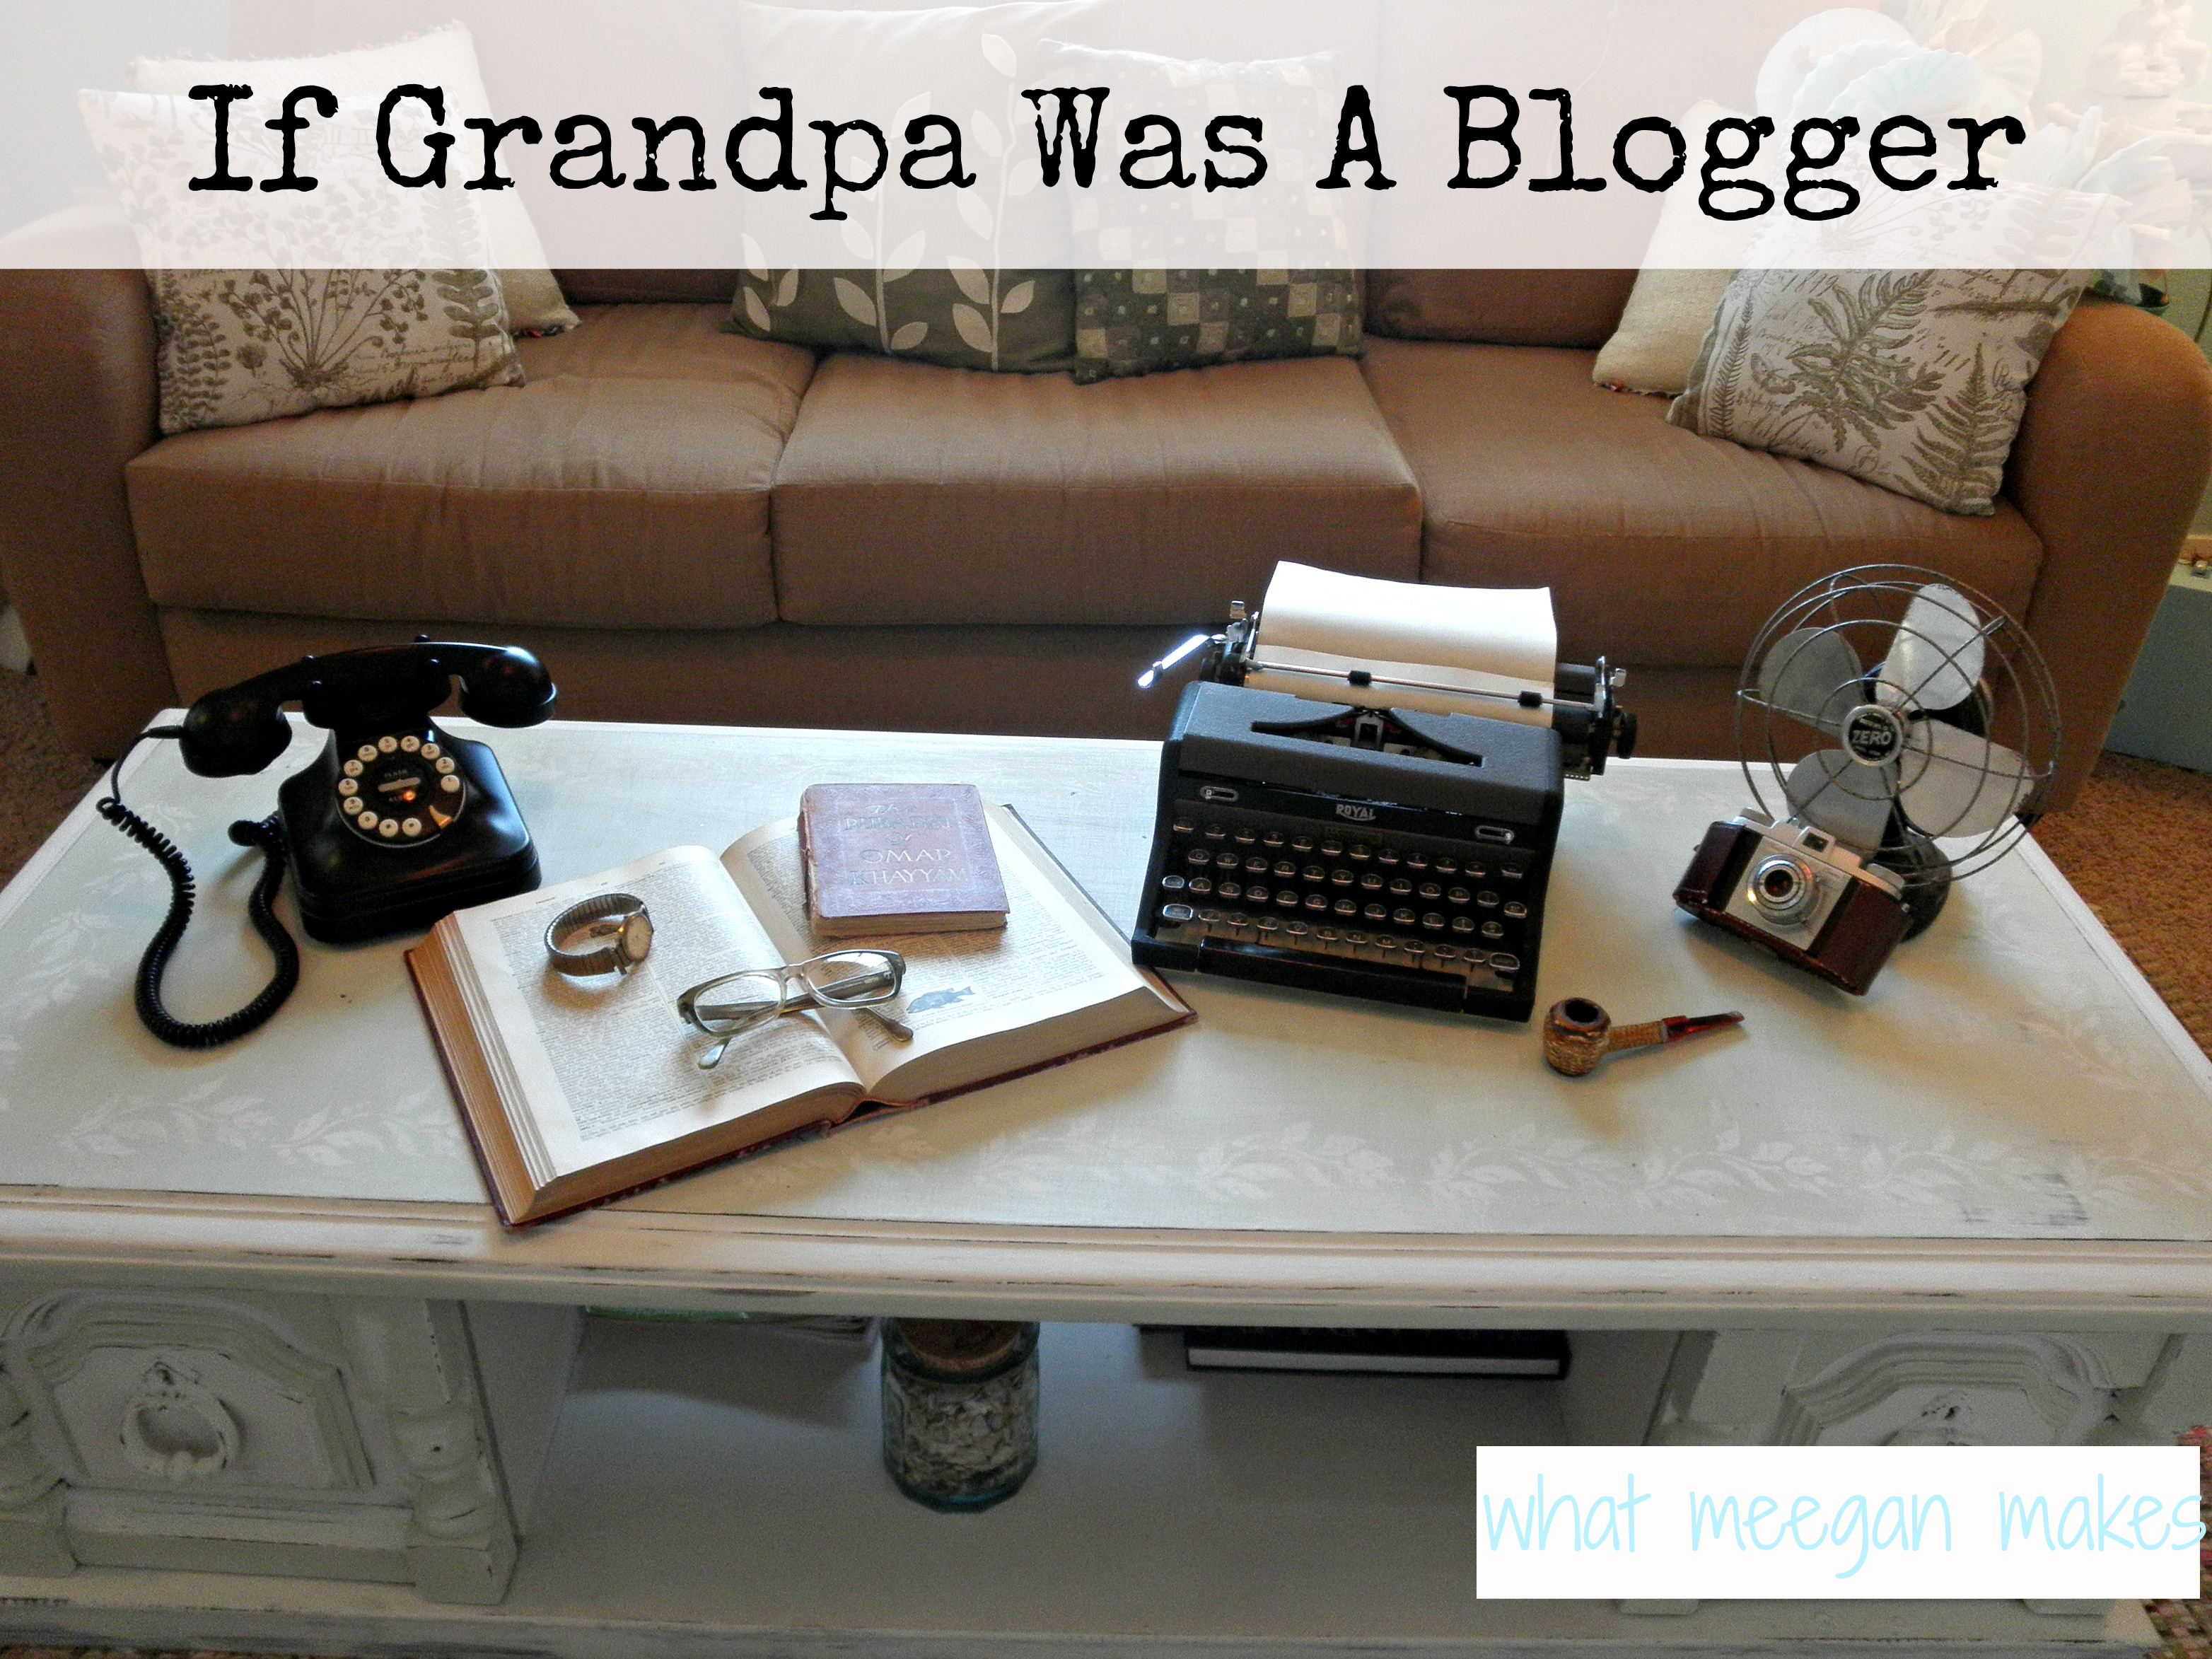 If grandpa was a blogger